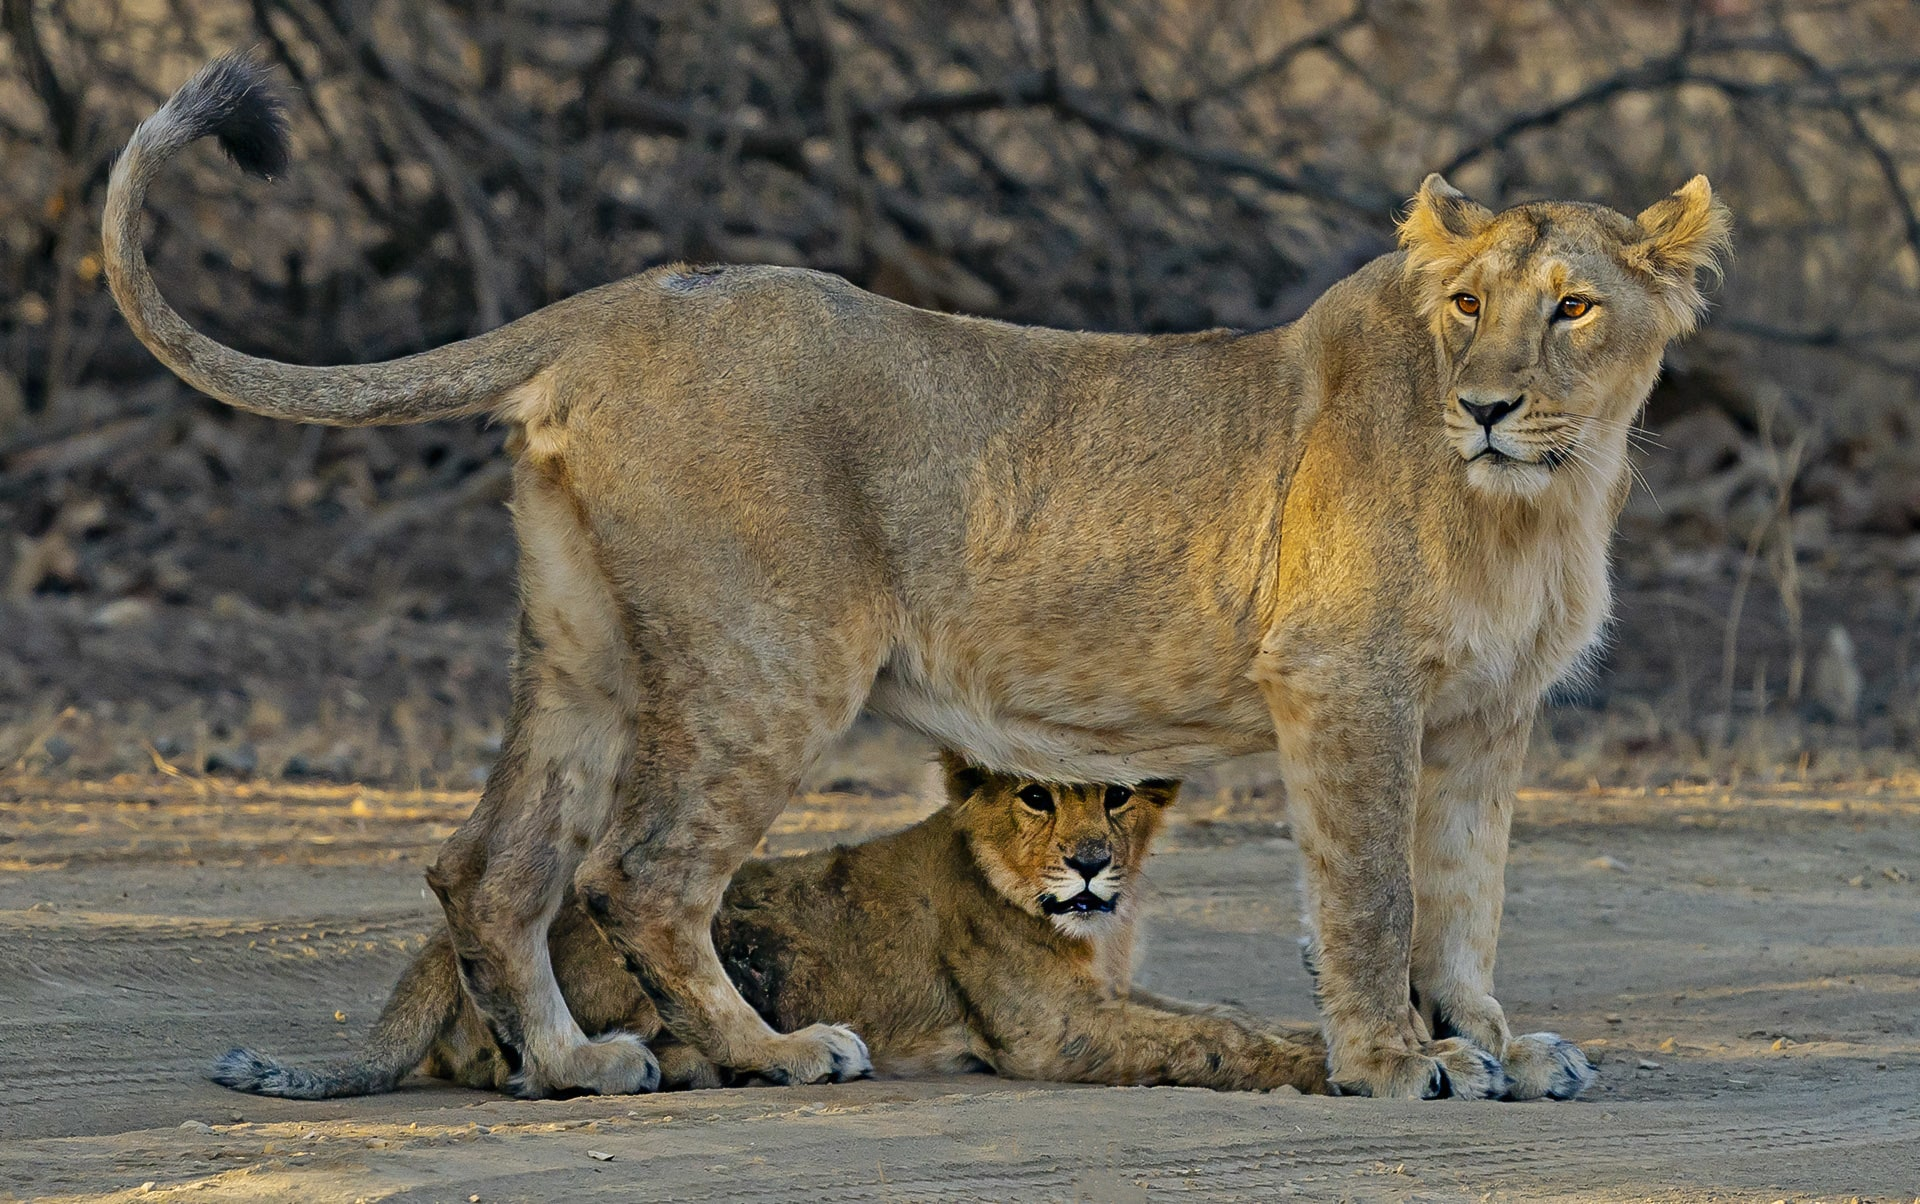 """Infanticide is common behaviour among large cats, and females such as this lioness with her cub seemingly have little choice in the matter. Photo: Dhritiman Mukherjee  Cover photo: Female tigers copulate with dominant males, as in this instance in Bandhavgarh, but they also mate with """"floaters"""", ones that don't have a territory to call their own. Cover photo: Shivang Mehta"""